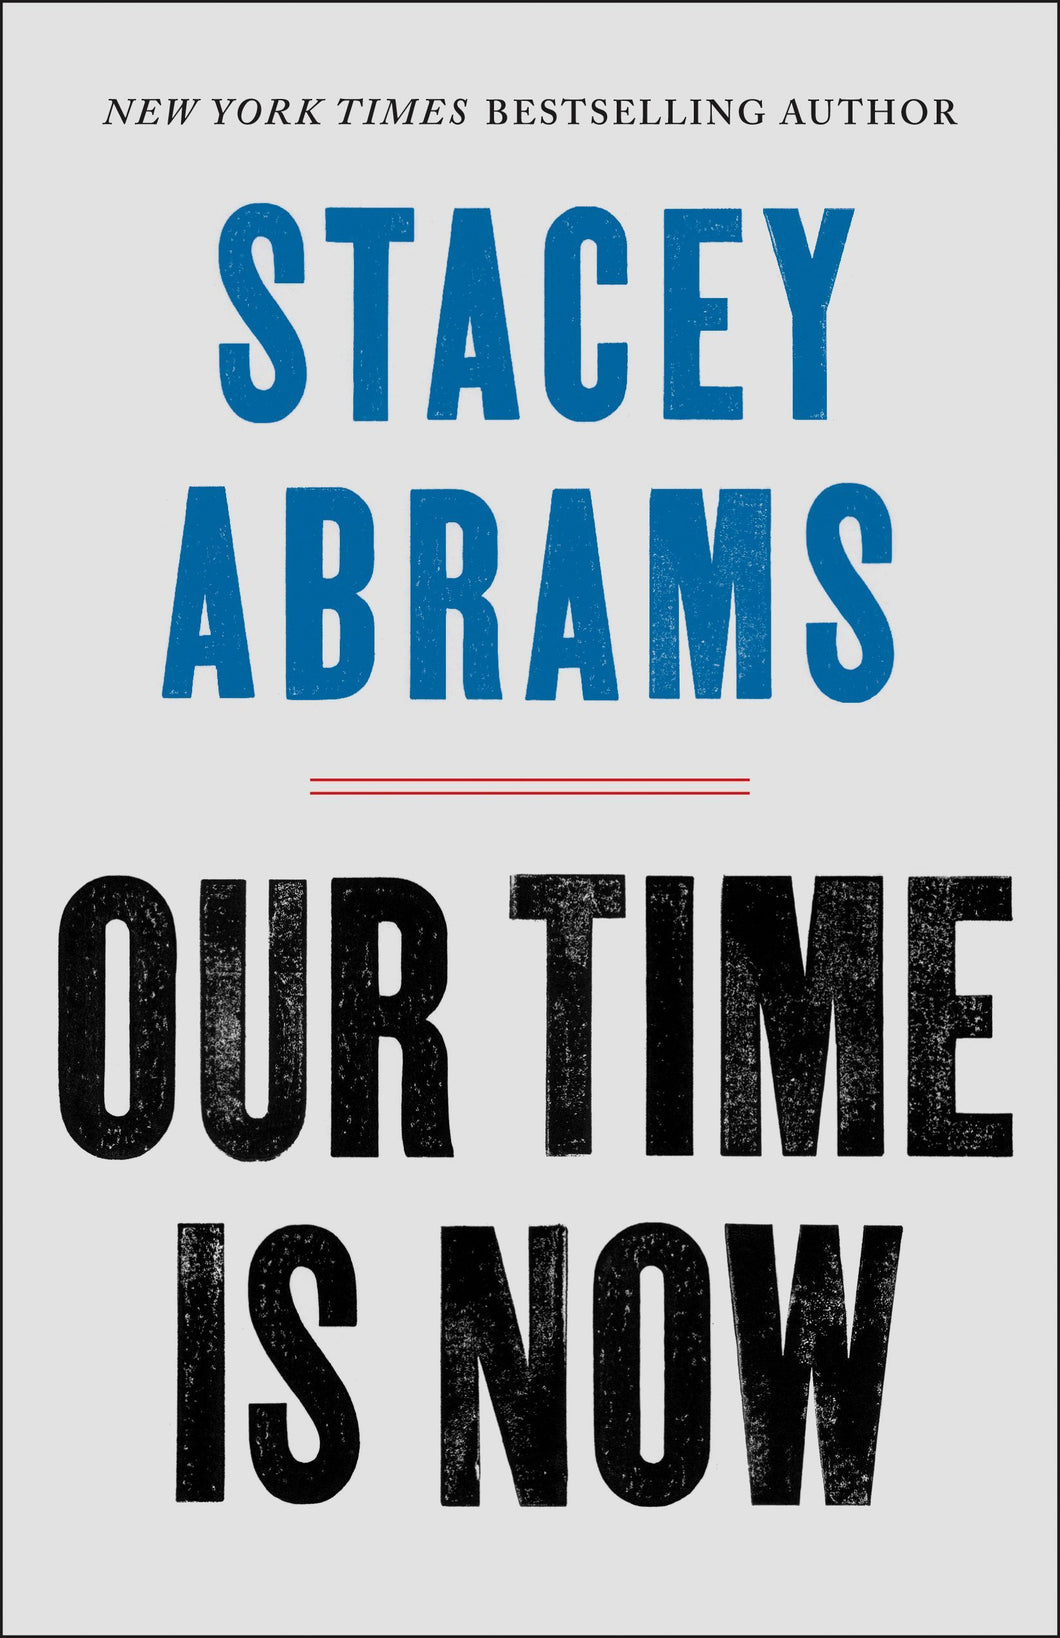 Our Time Is Now: Power, Purpose, & the Fight for a Fair America by Stacey Abrams (Back-Order, Dec 10)